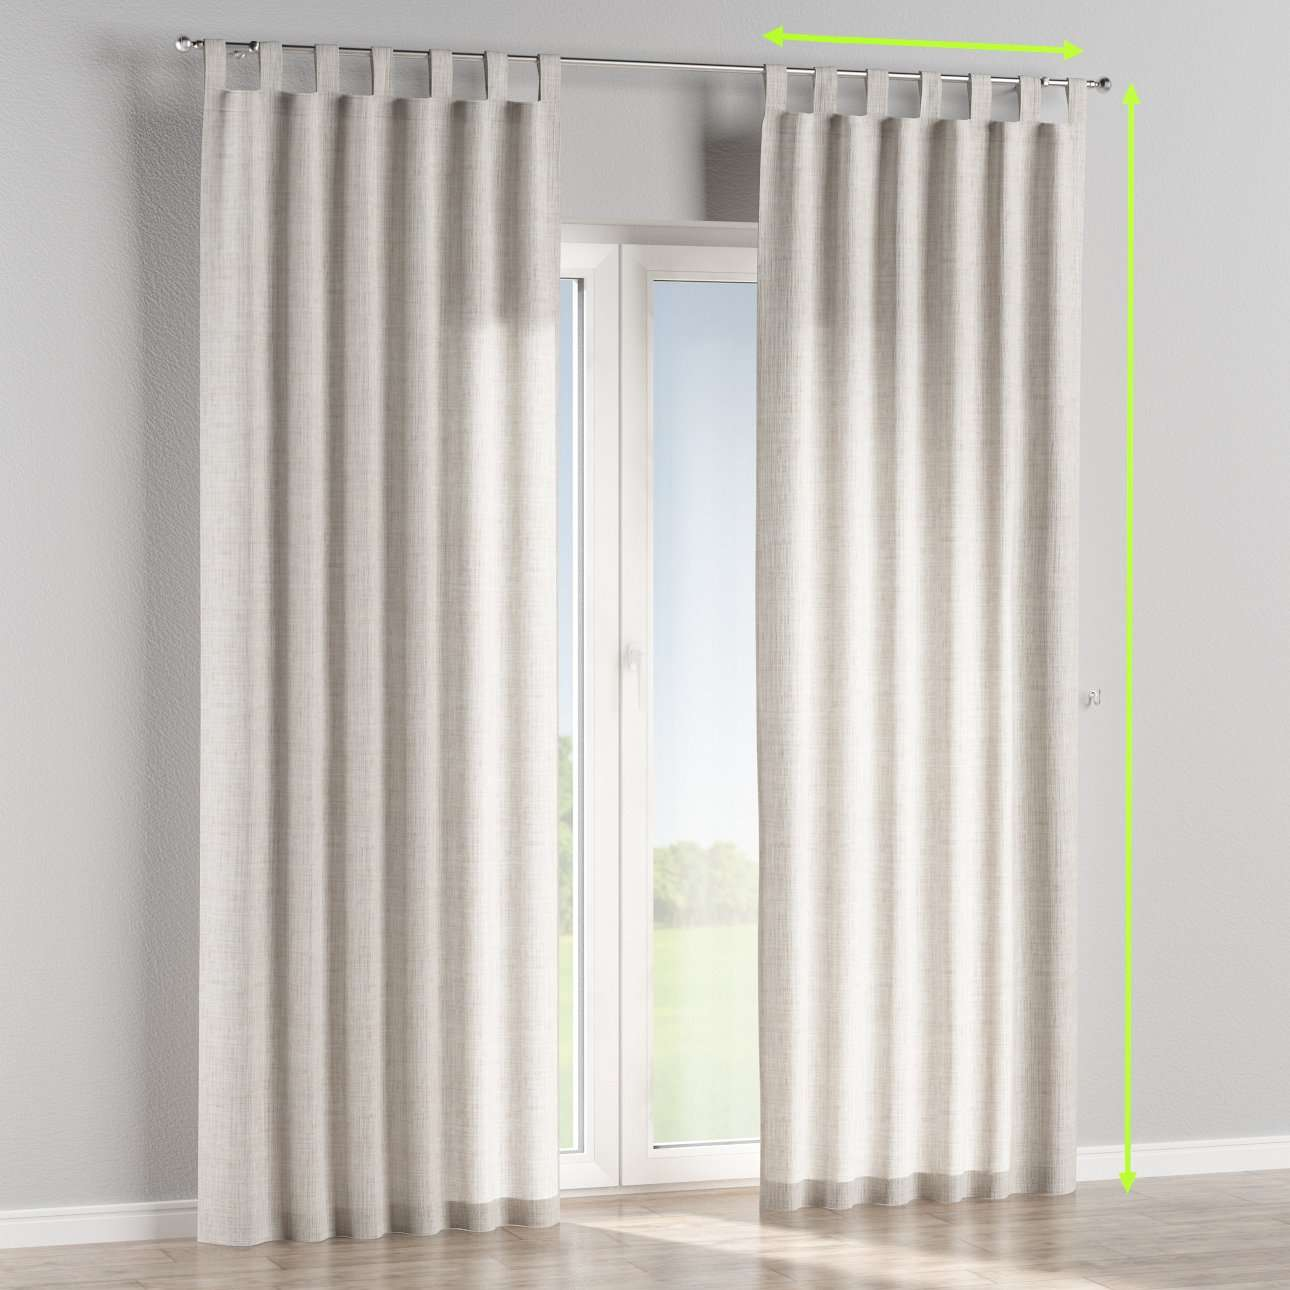 Tab top lined curtains in collection Aquarelle, fabric: 140-75